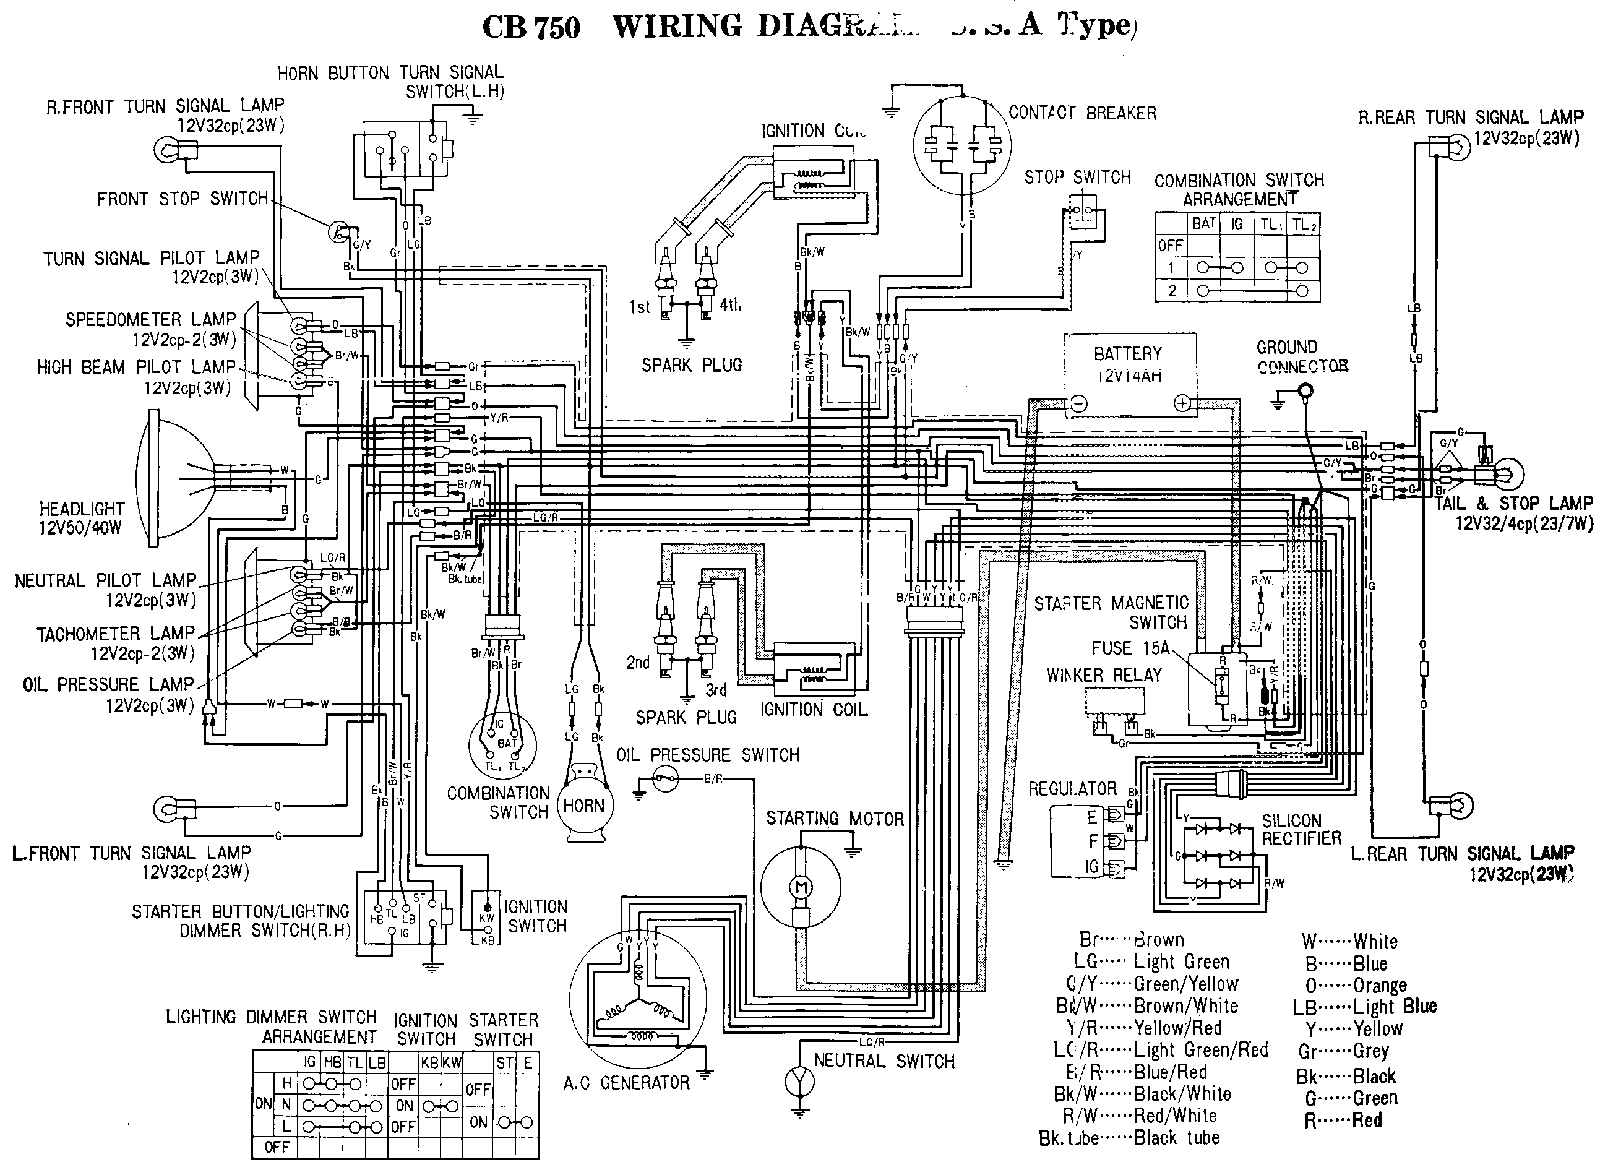 Travis's Album: Honda CB750 Wiring Diagrams